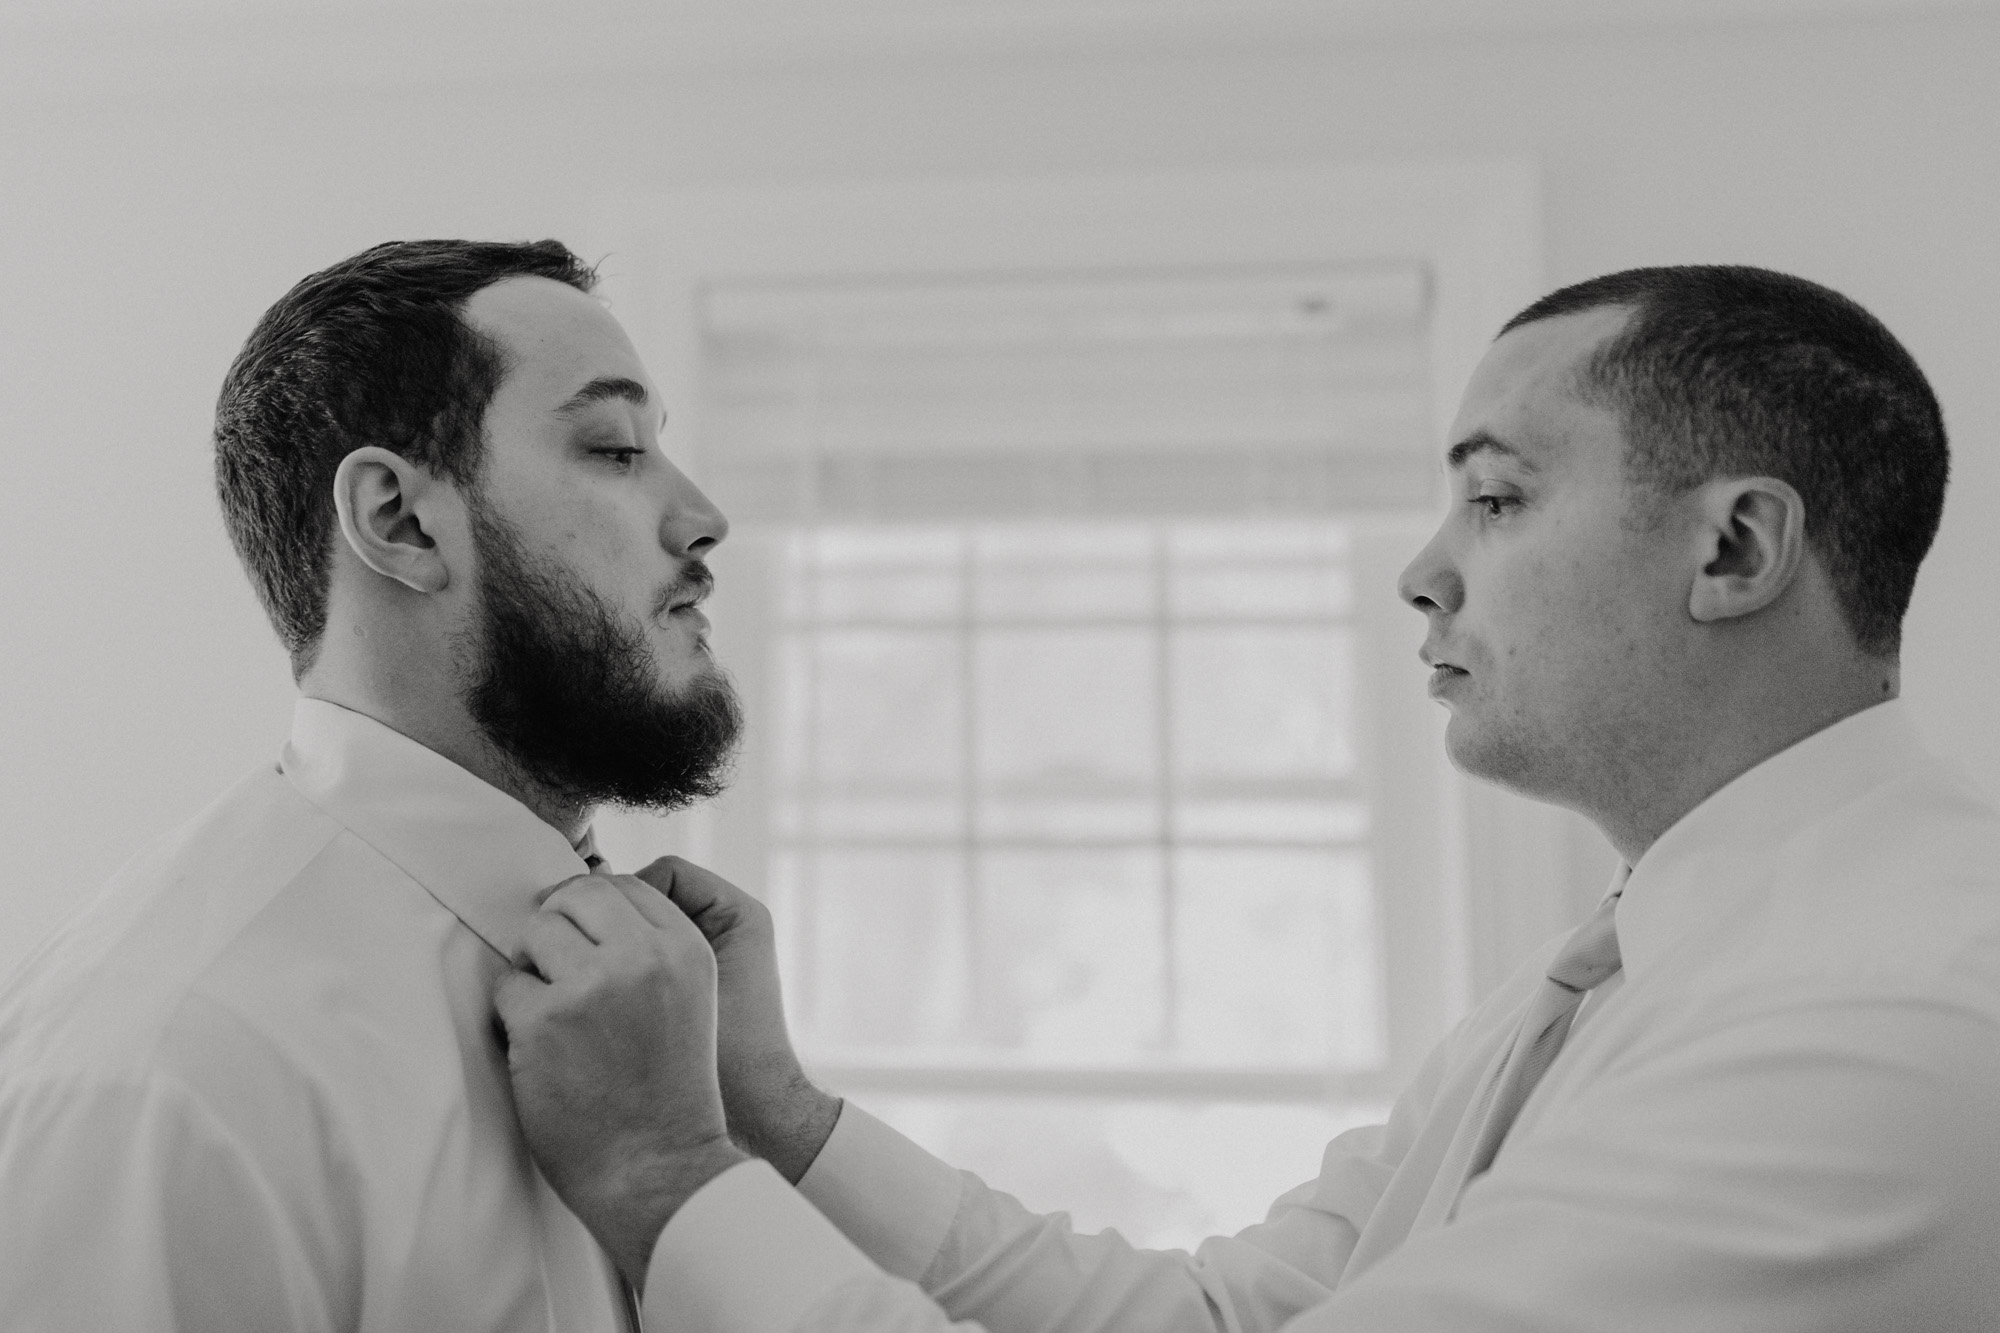 The groom and his best man prepare for the wedding